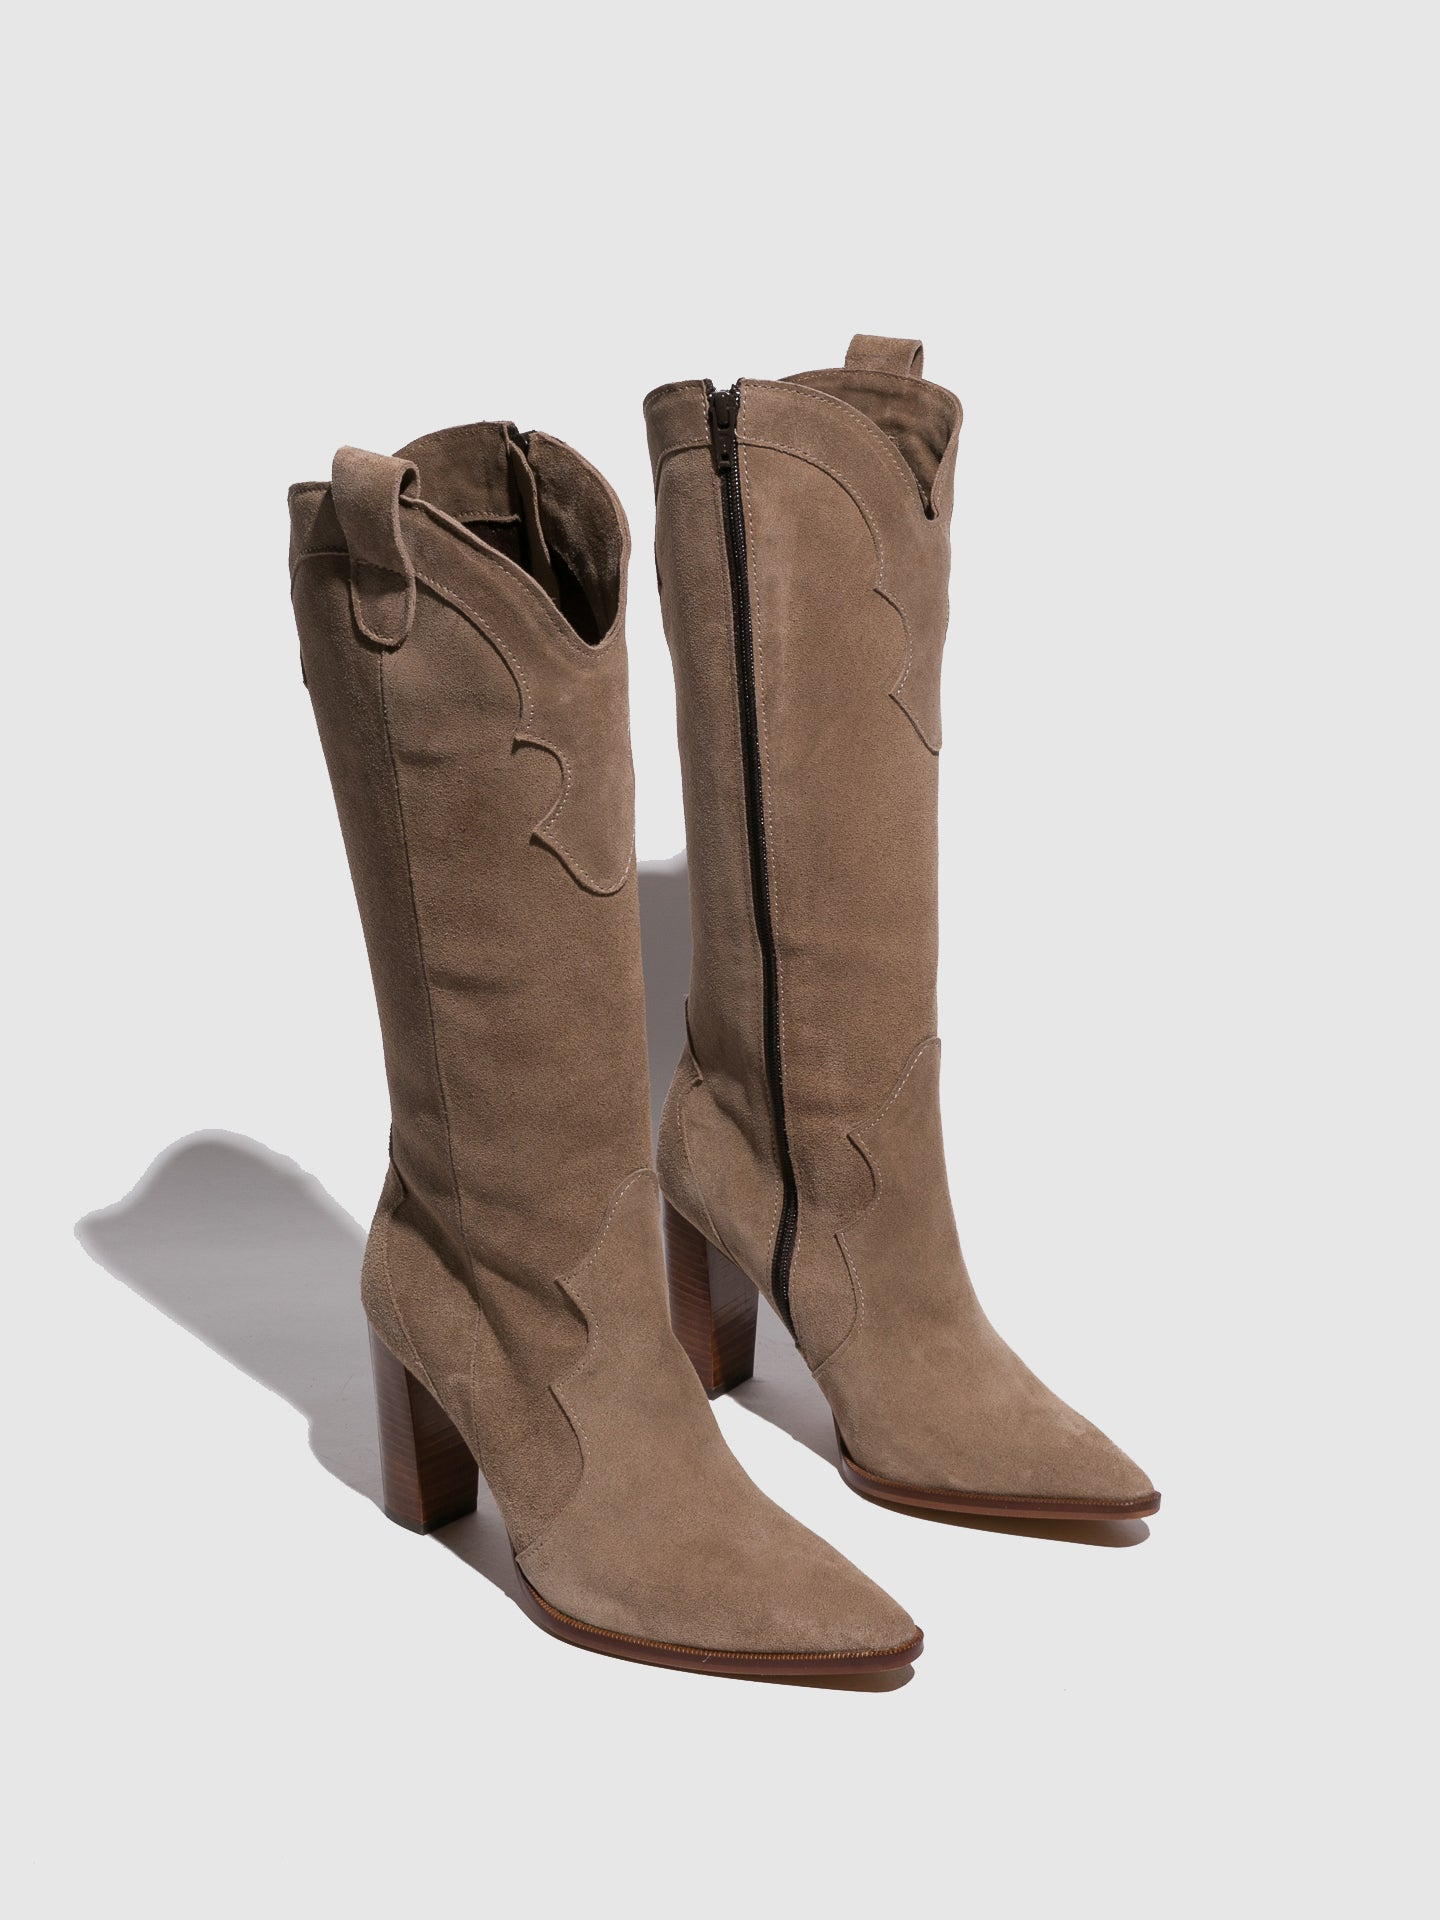 Foreva Beige Zip Up Boots